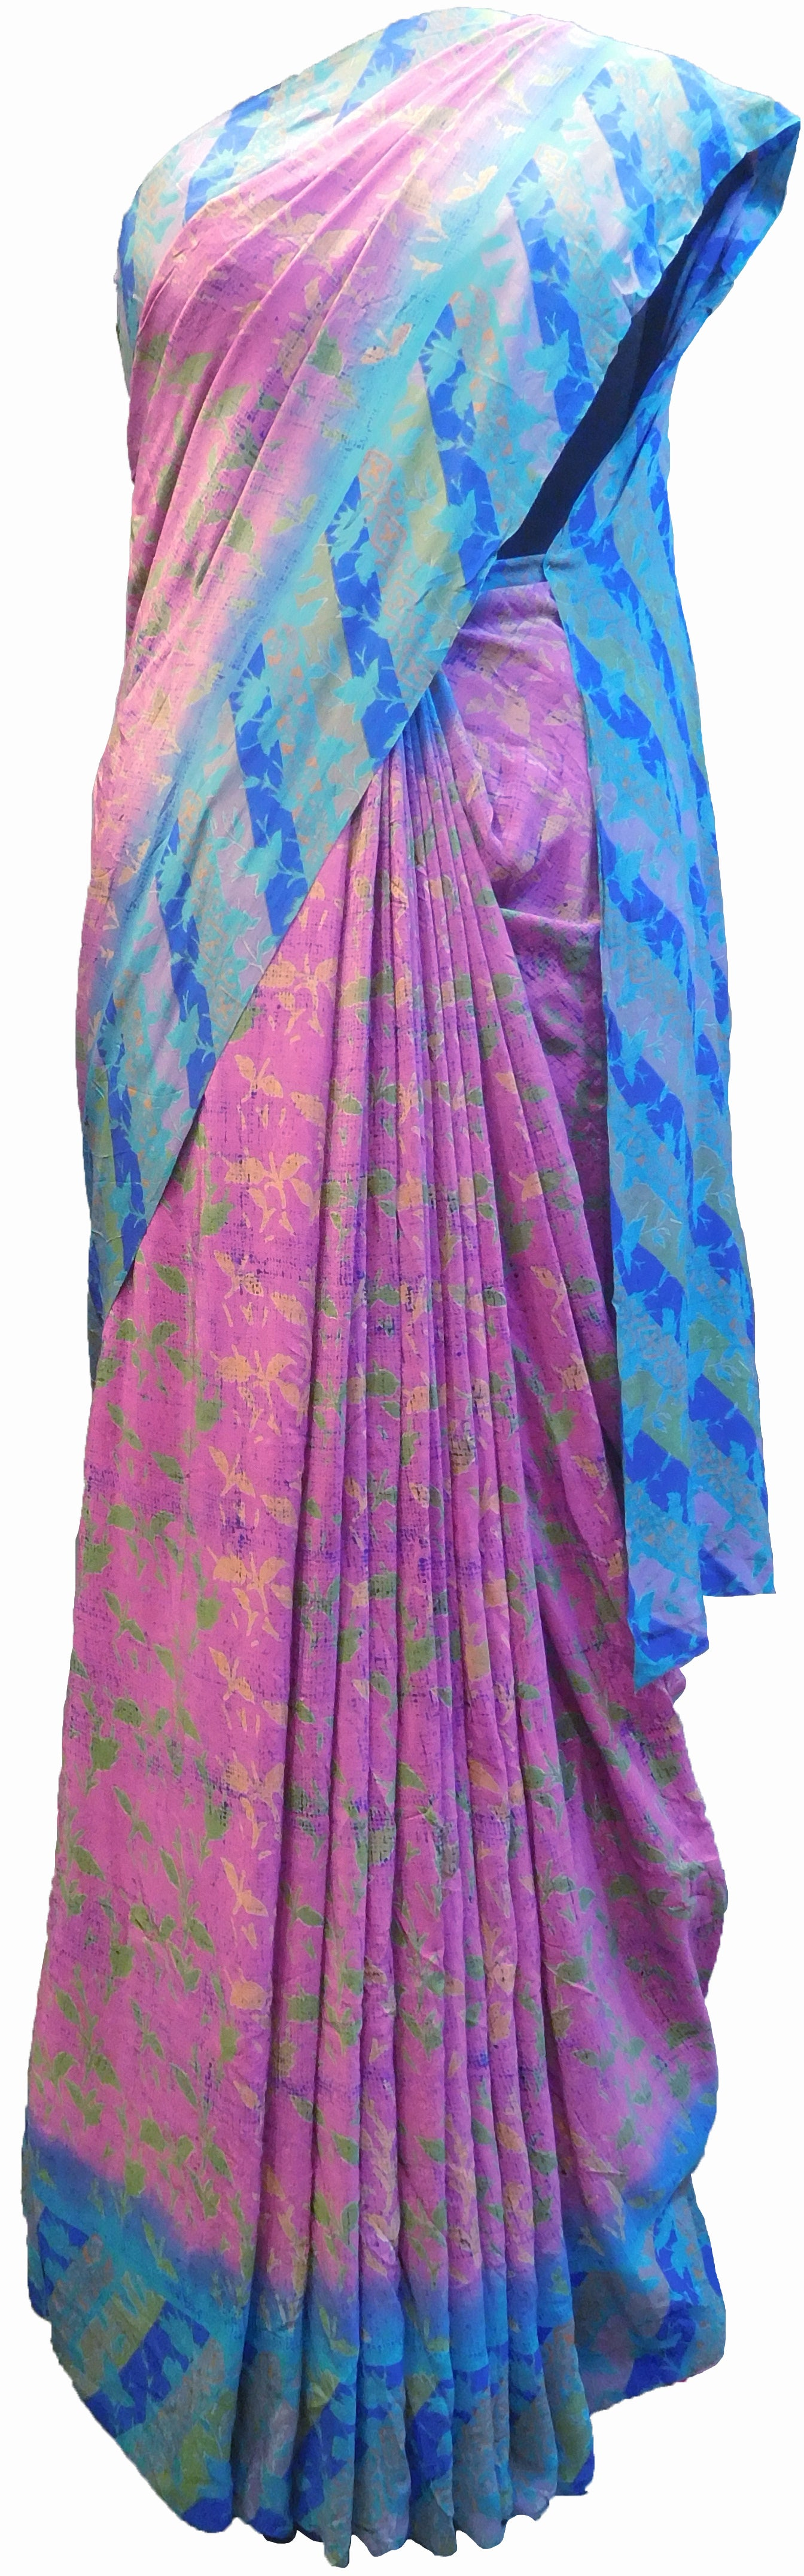 SMSAREE Multi Color Designer Wedding Partywear Pure Crepe Hand Brush Print Hand Embroidery Work Bridal Saree Sari With Blouse Piece RP355